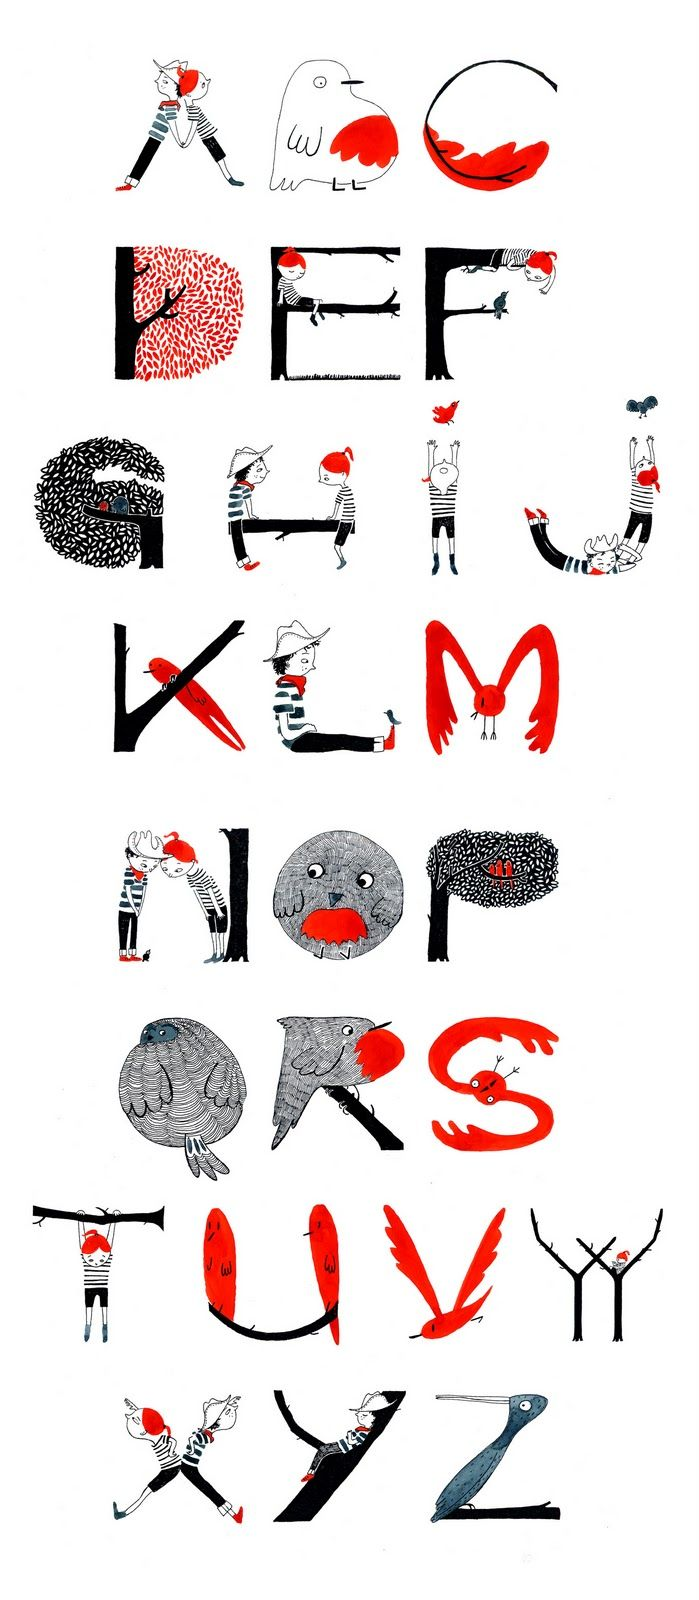 Love this specifically, but could make an art project for each kid to come up with a theme for their own alphabet poster.